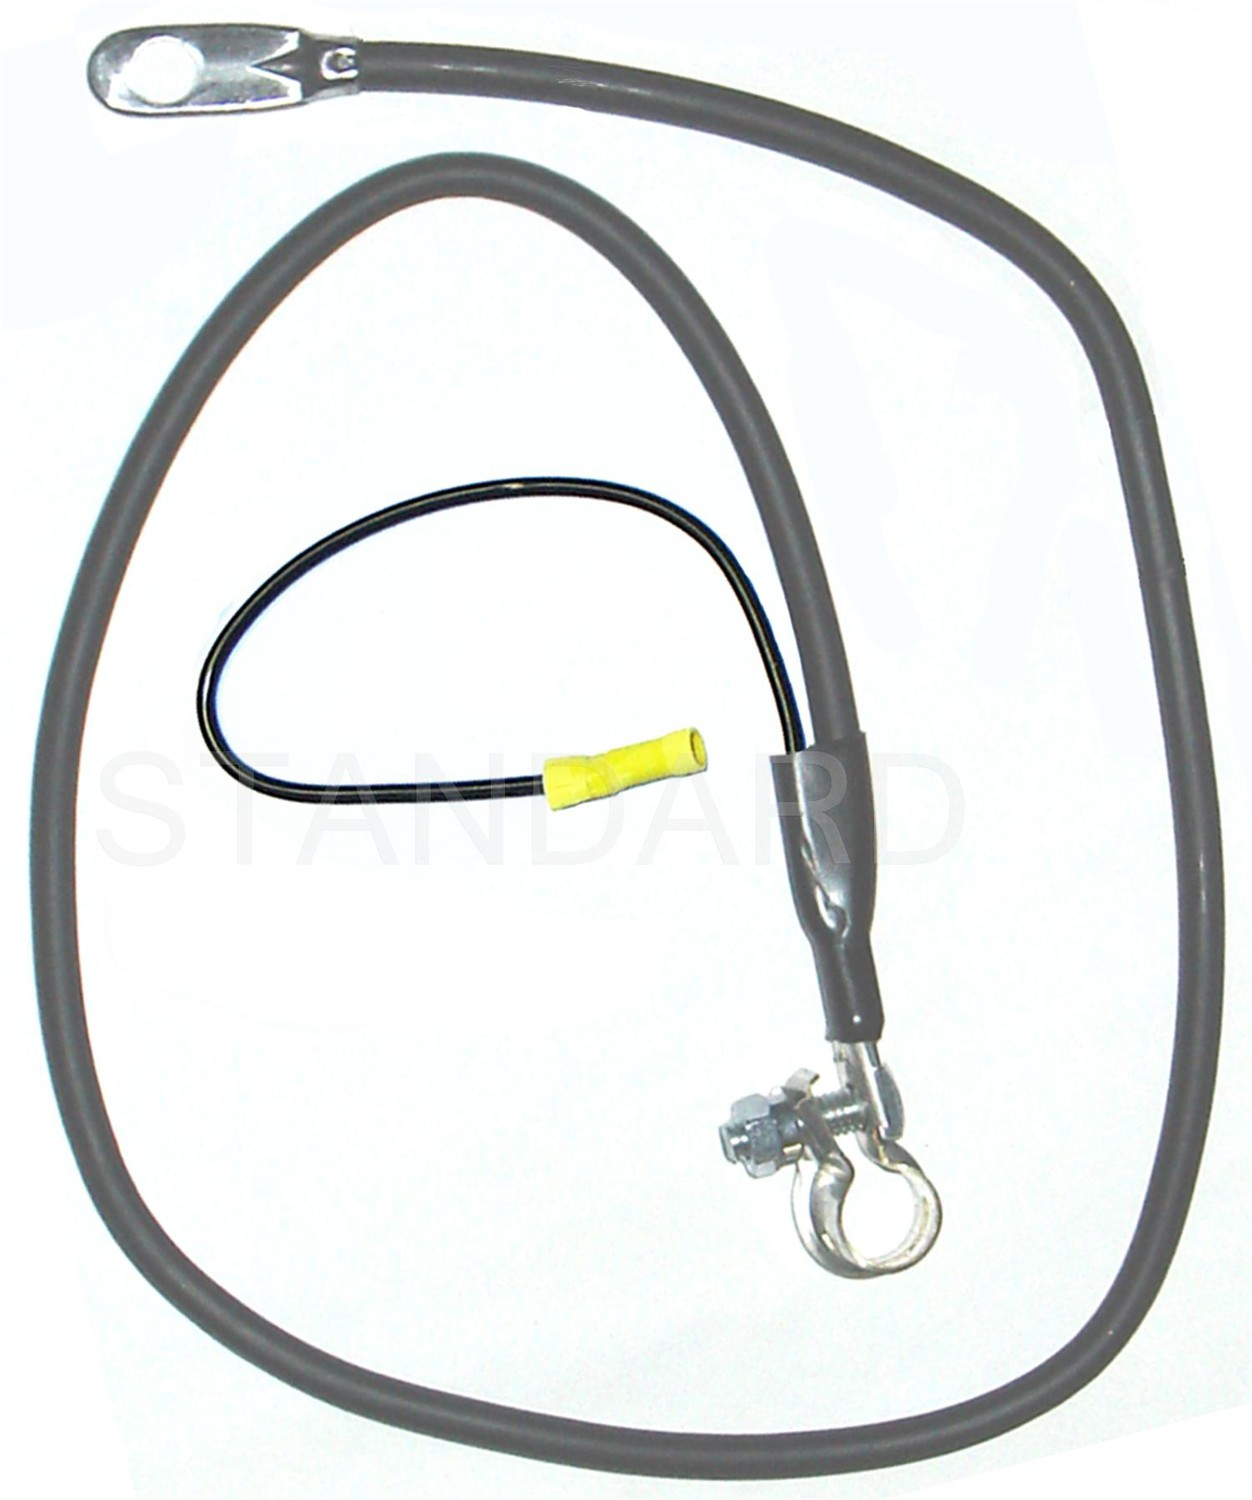 Battery Cable Worldparts We2 Lc